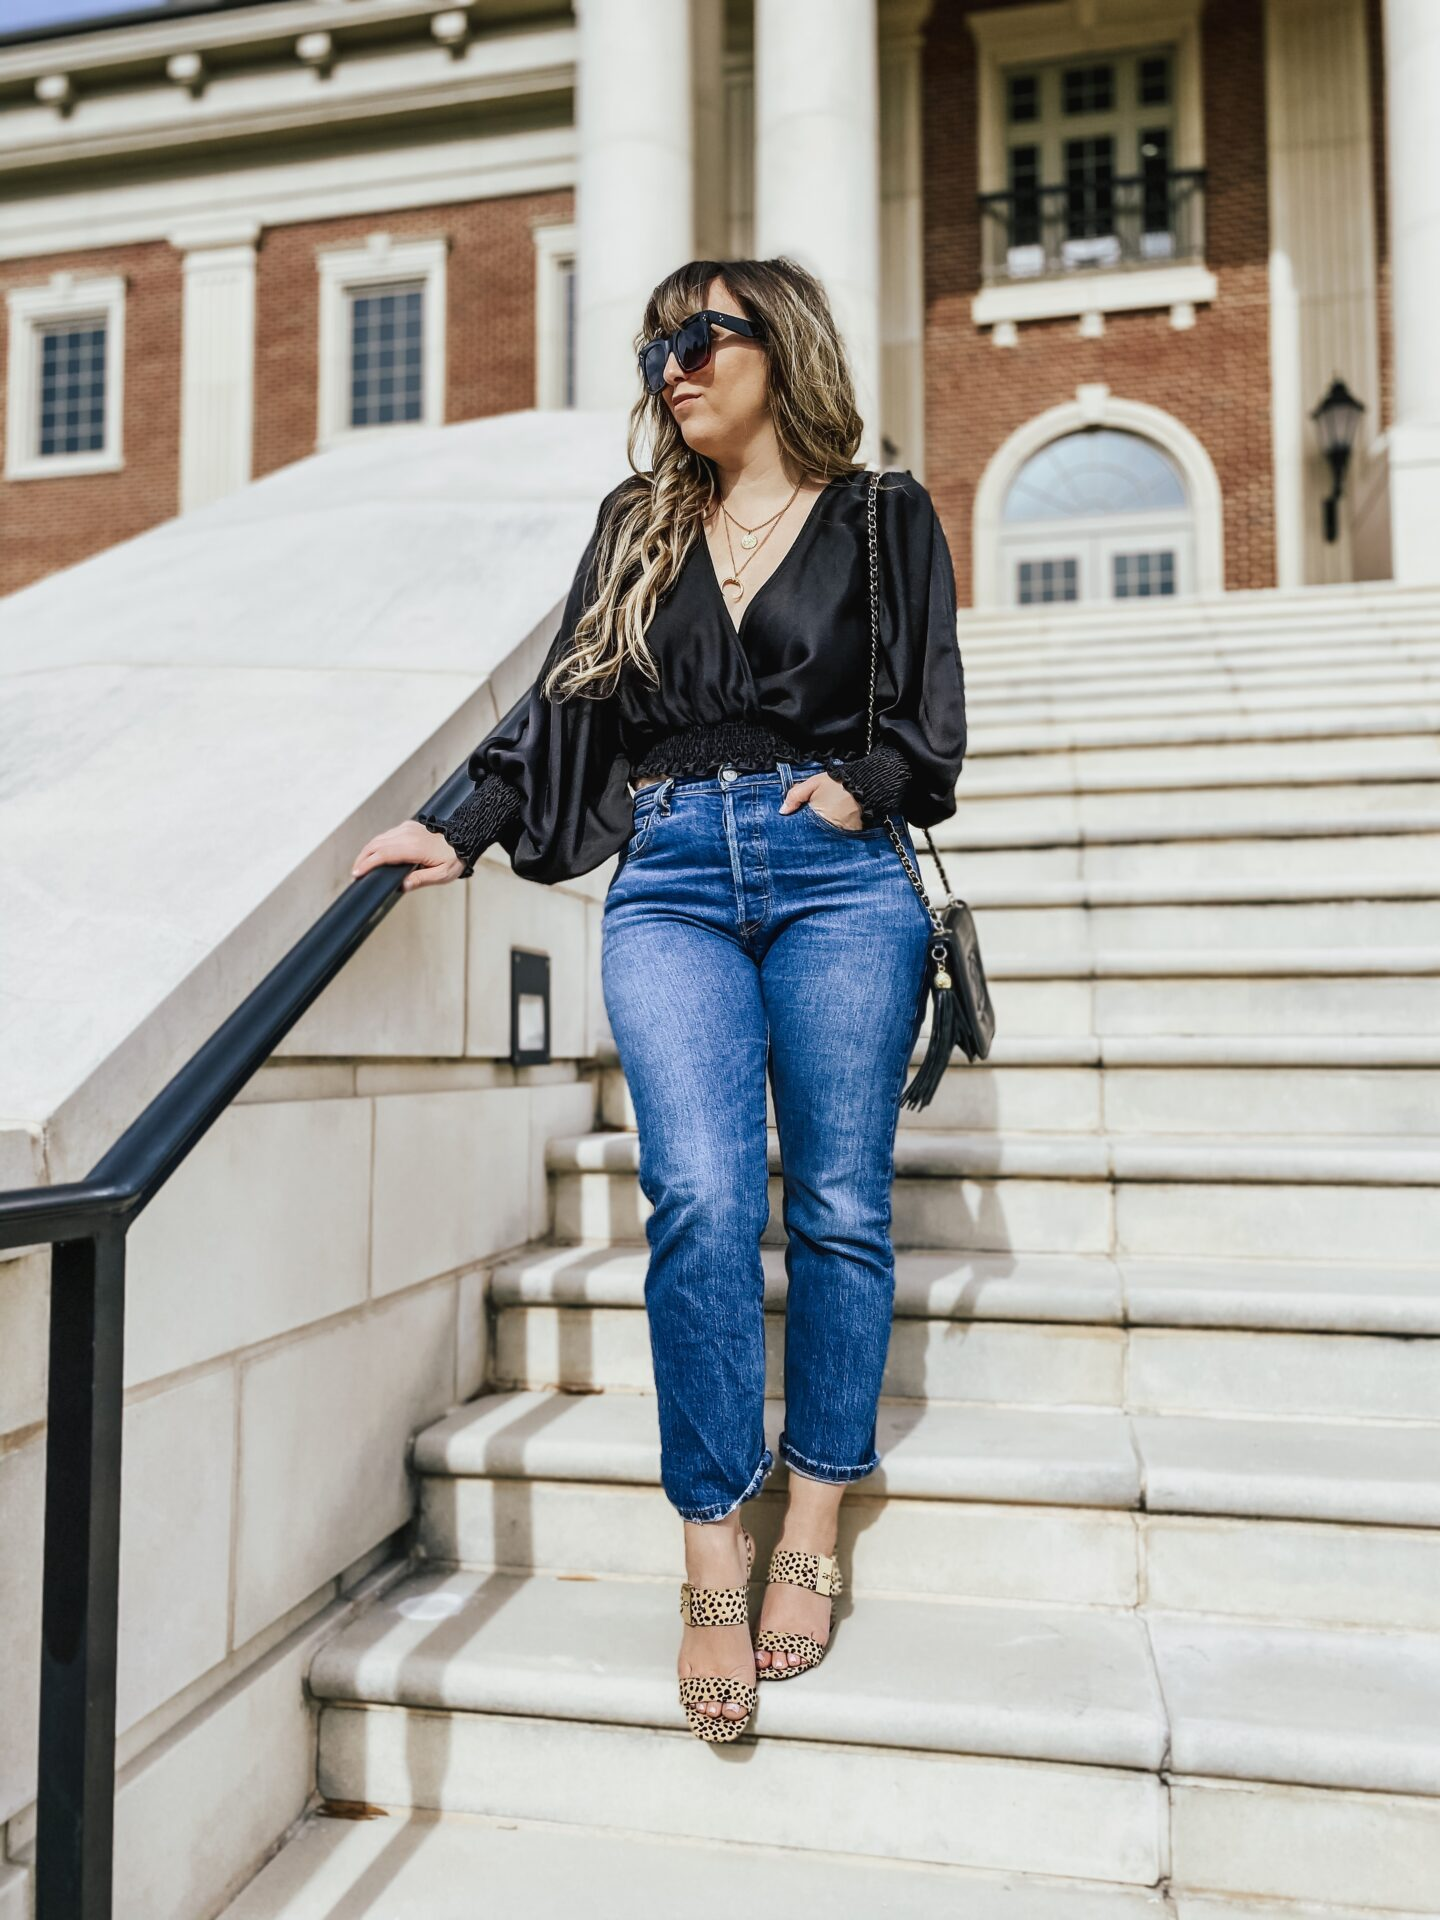 daily outfit - silky top and jeans